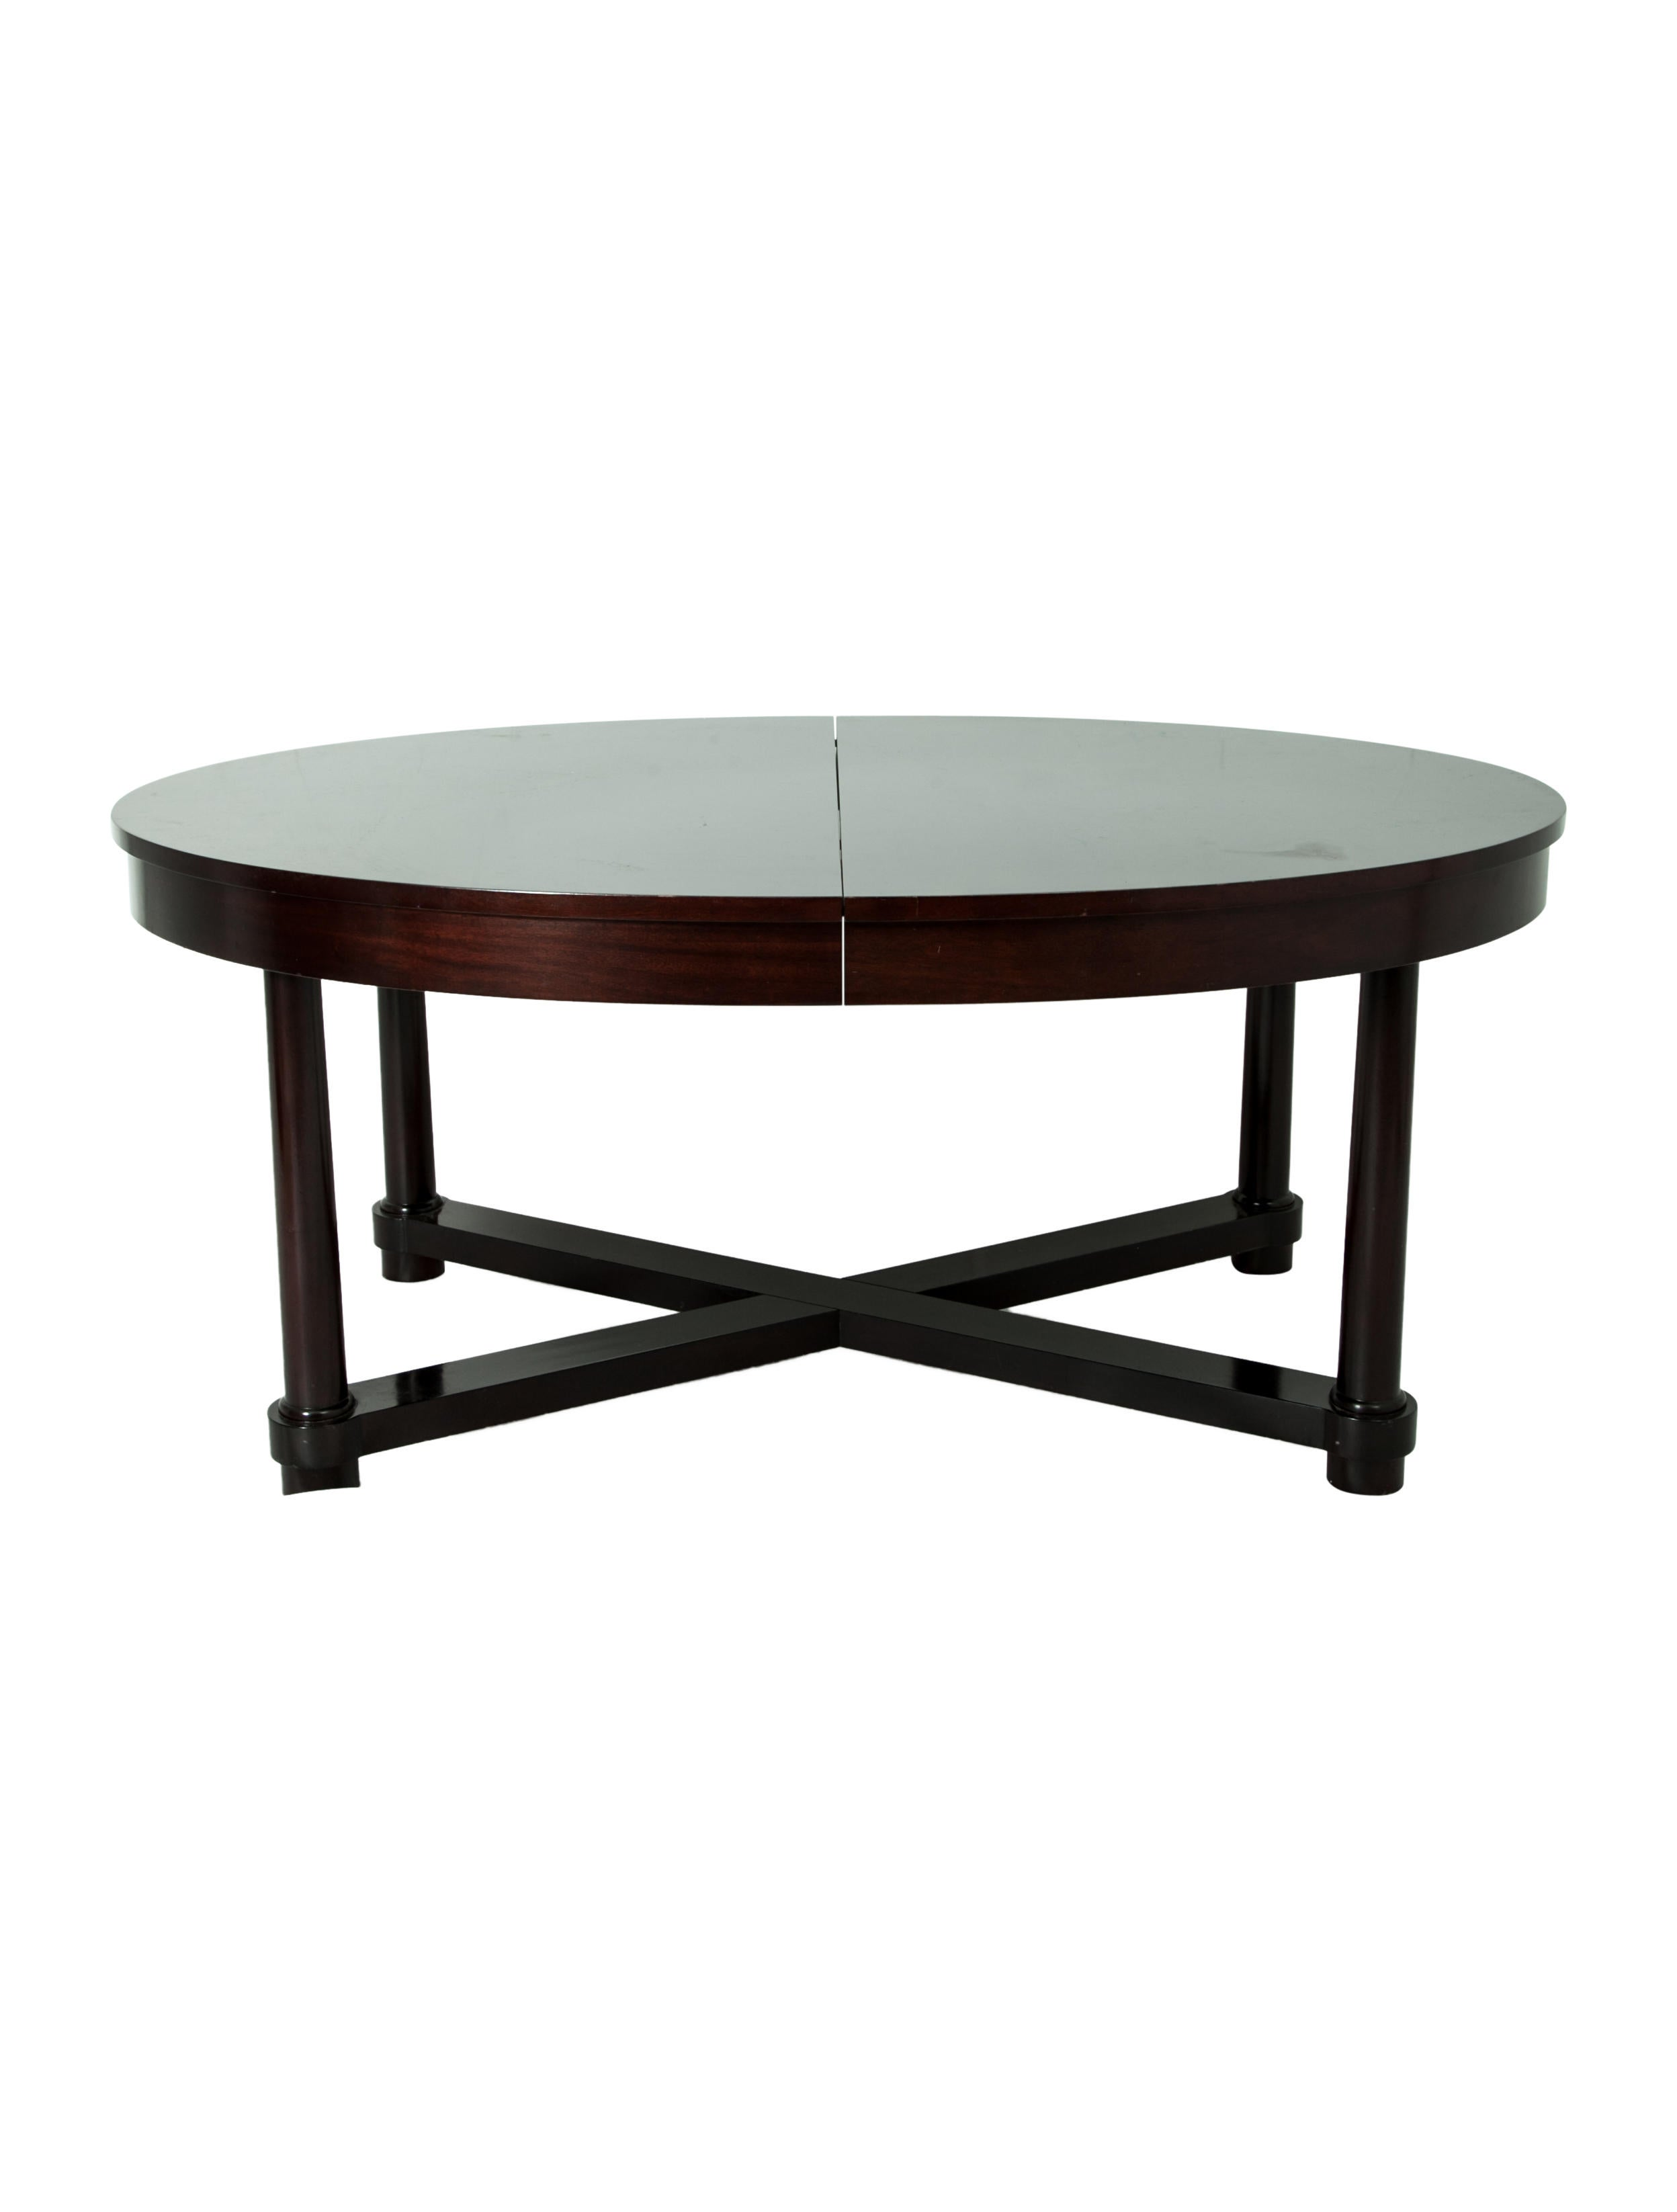 Baker oval dining table furniture table20148 the for Chair 6 mt baker